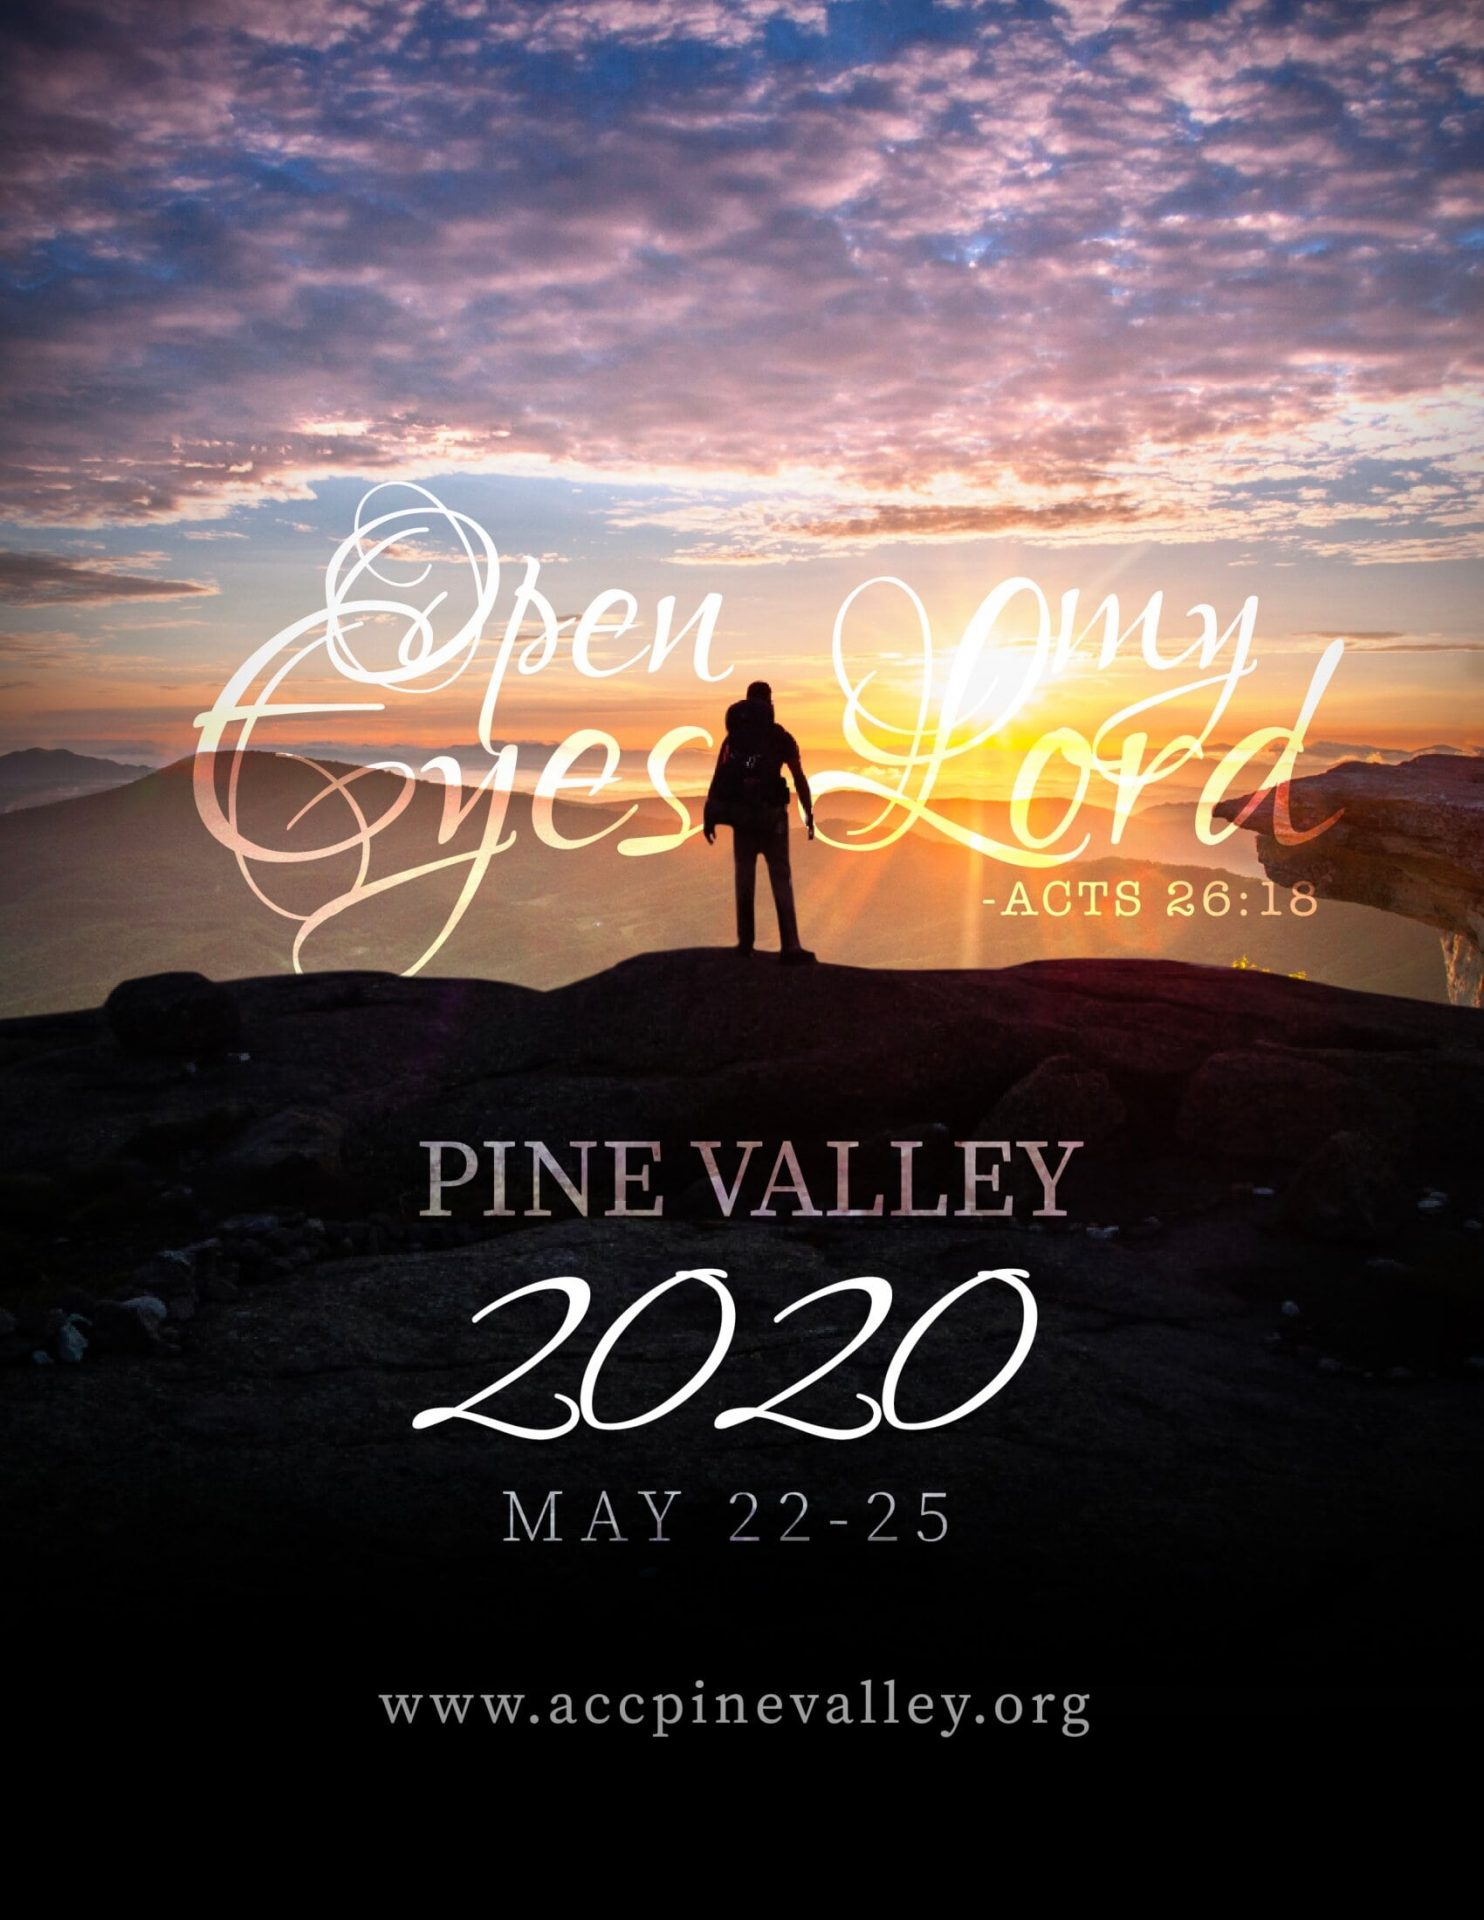 Pine Valley Retreat - May 22-25, 2020 - ACC Foundation